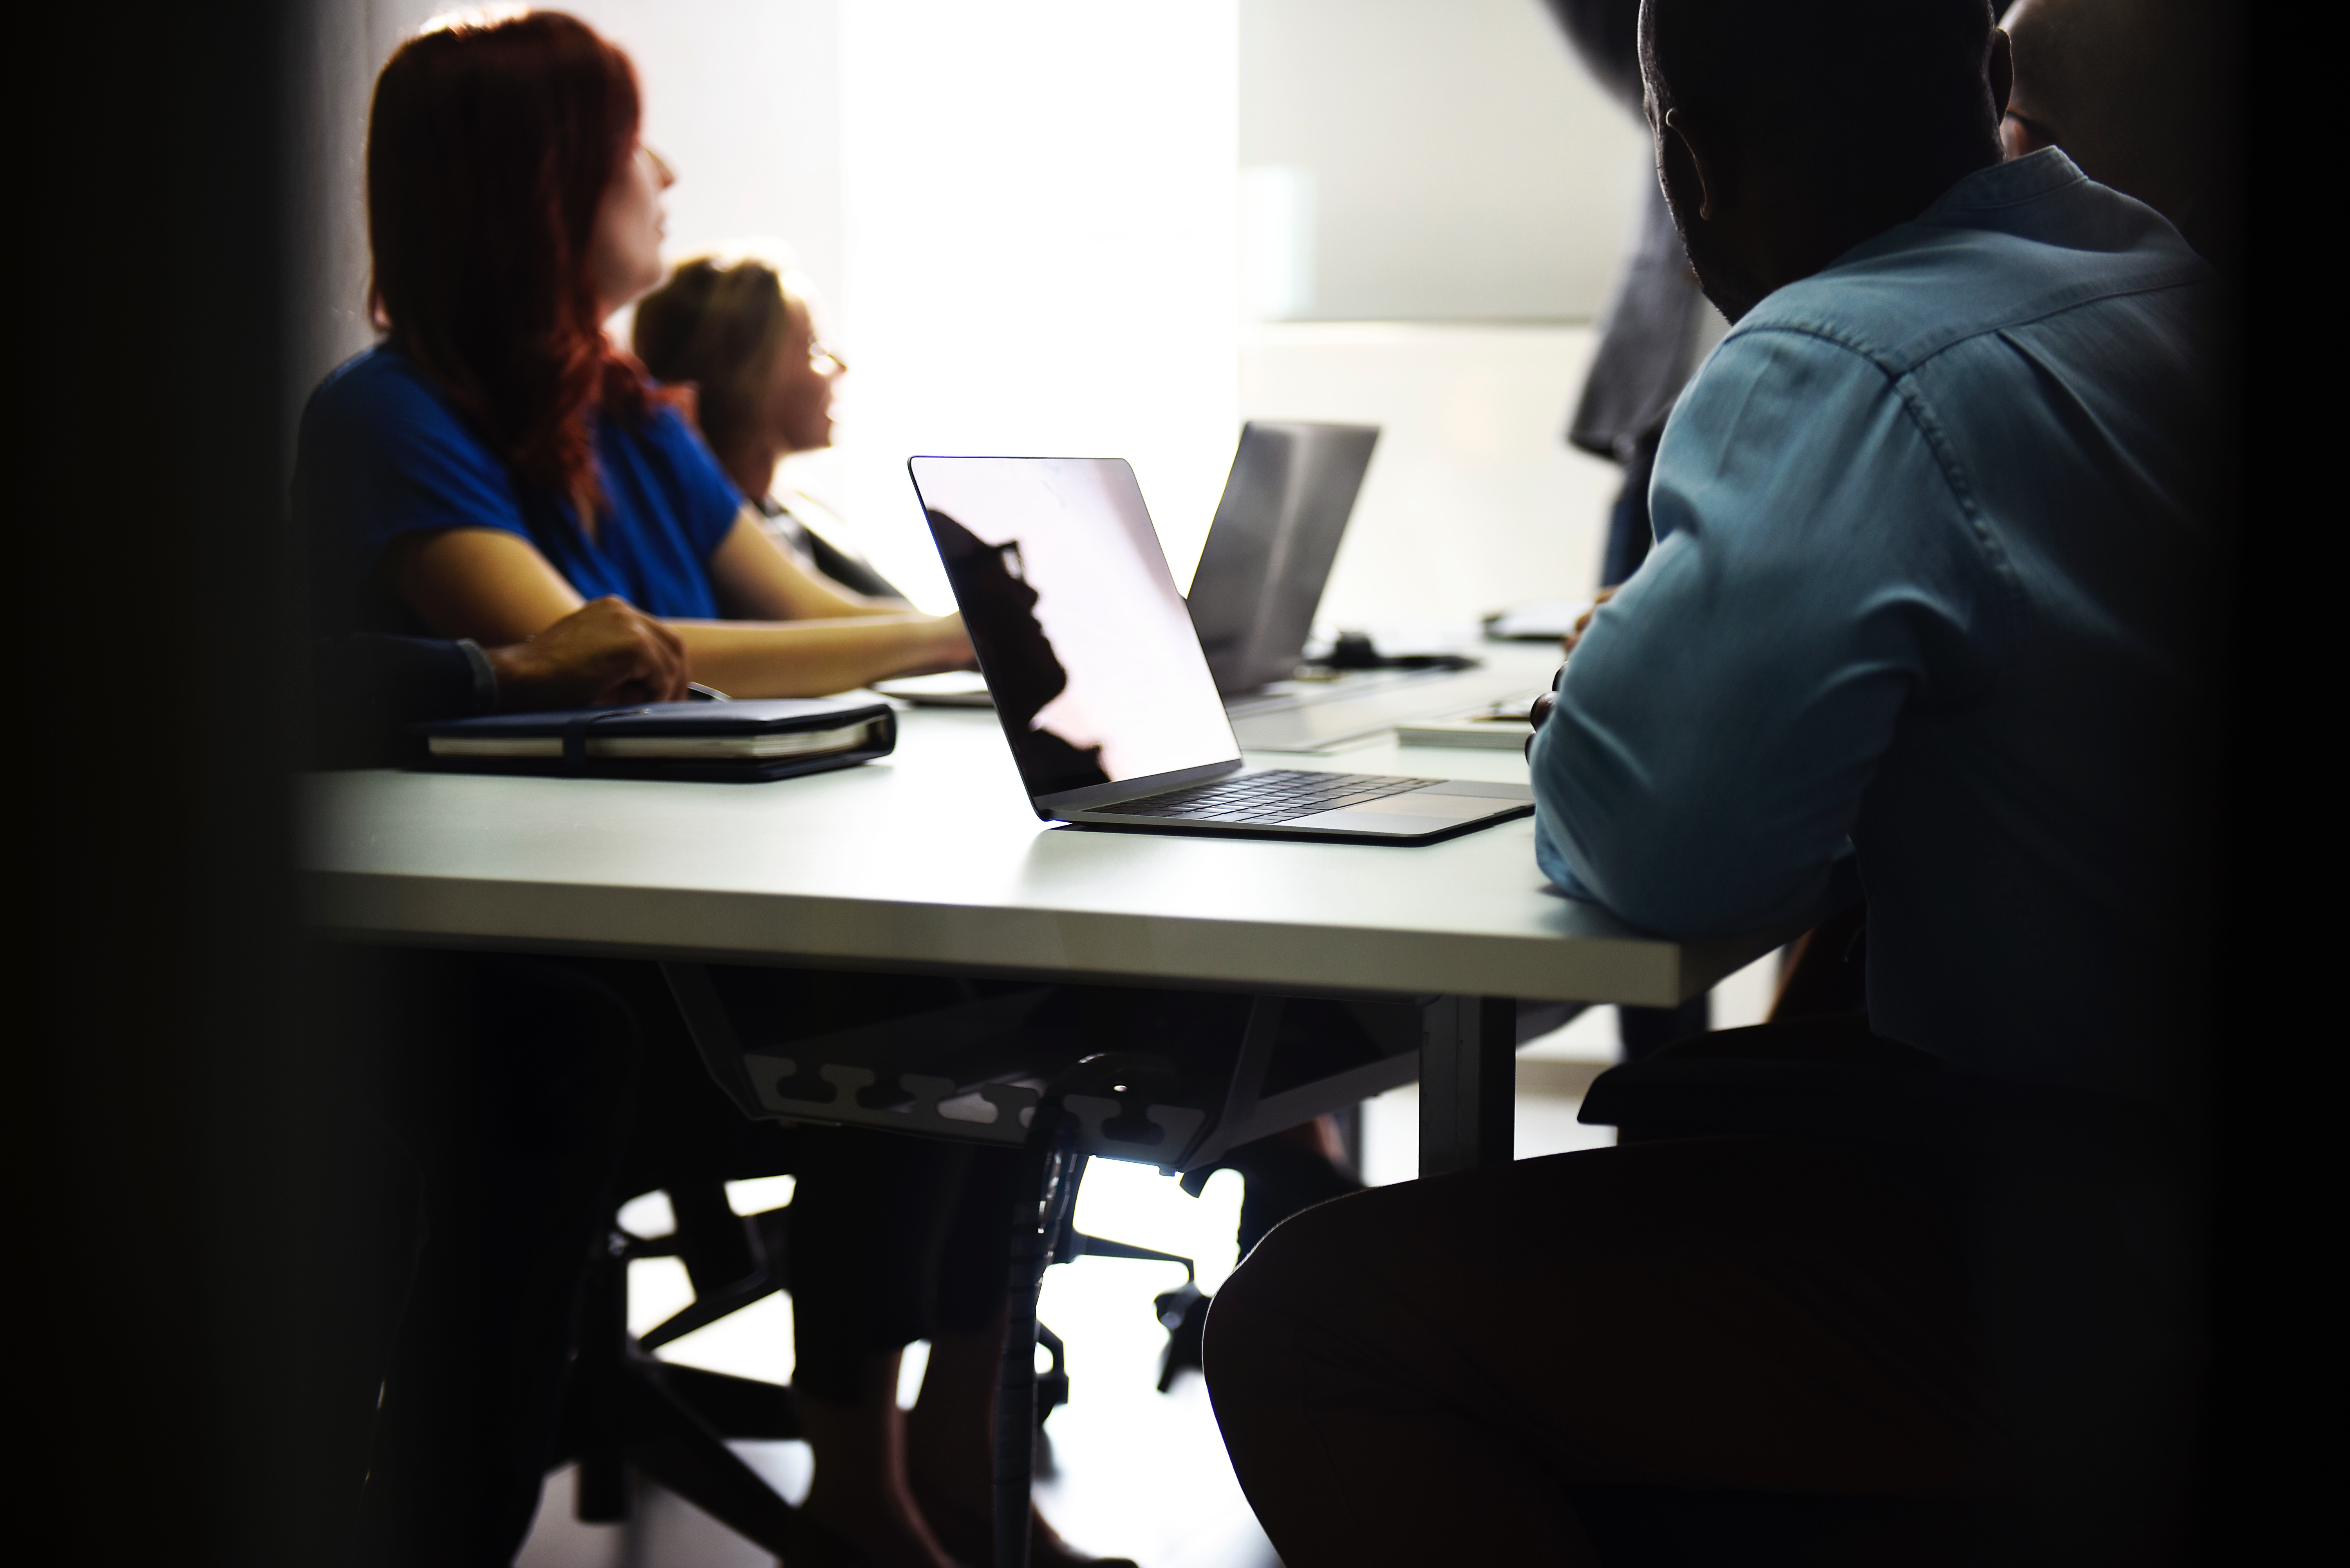 Upskilling Your Teams to Minimize the Talent Gap